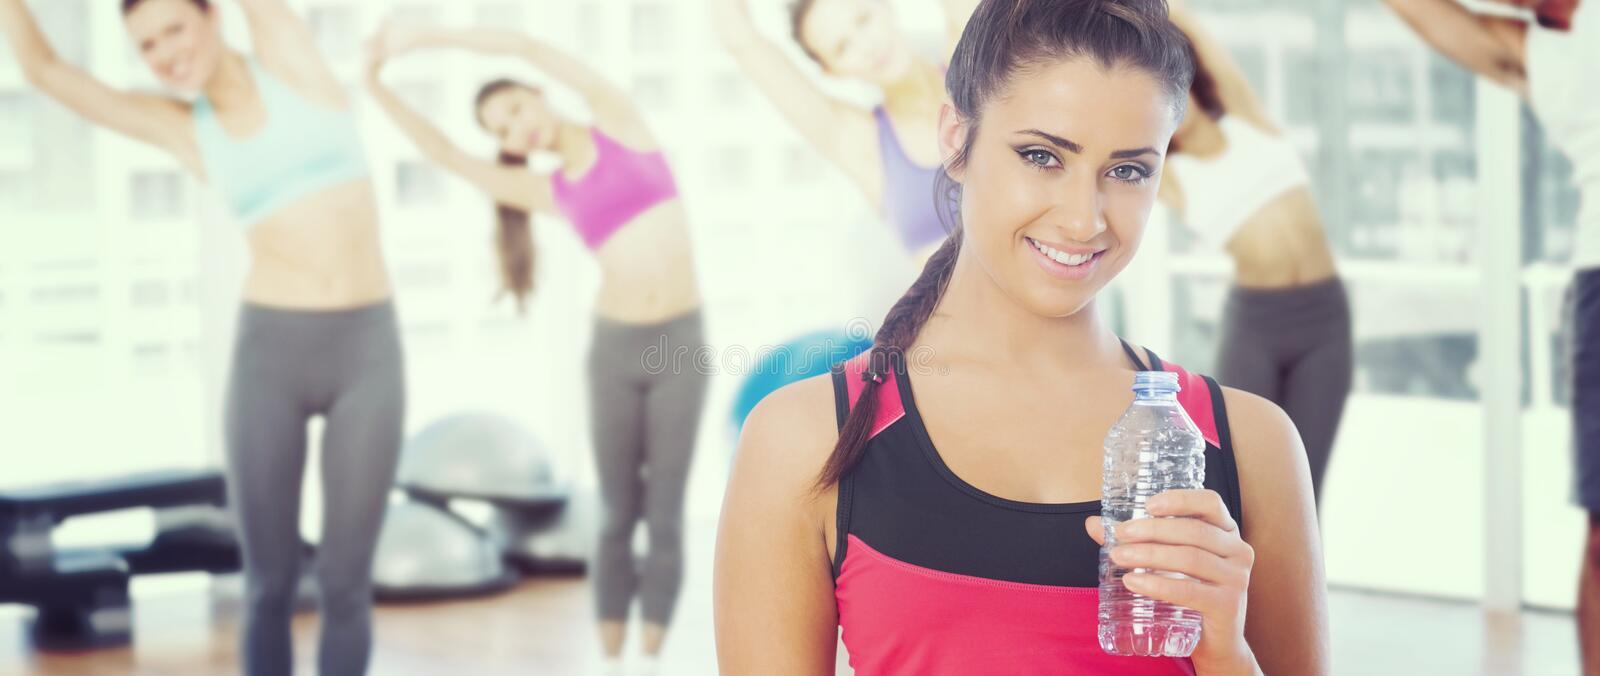 Composite image of fit woman holding water bottle stock image